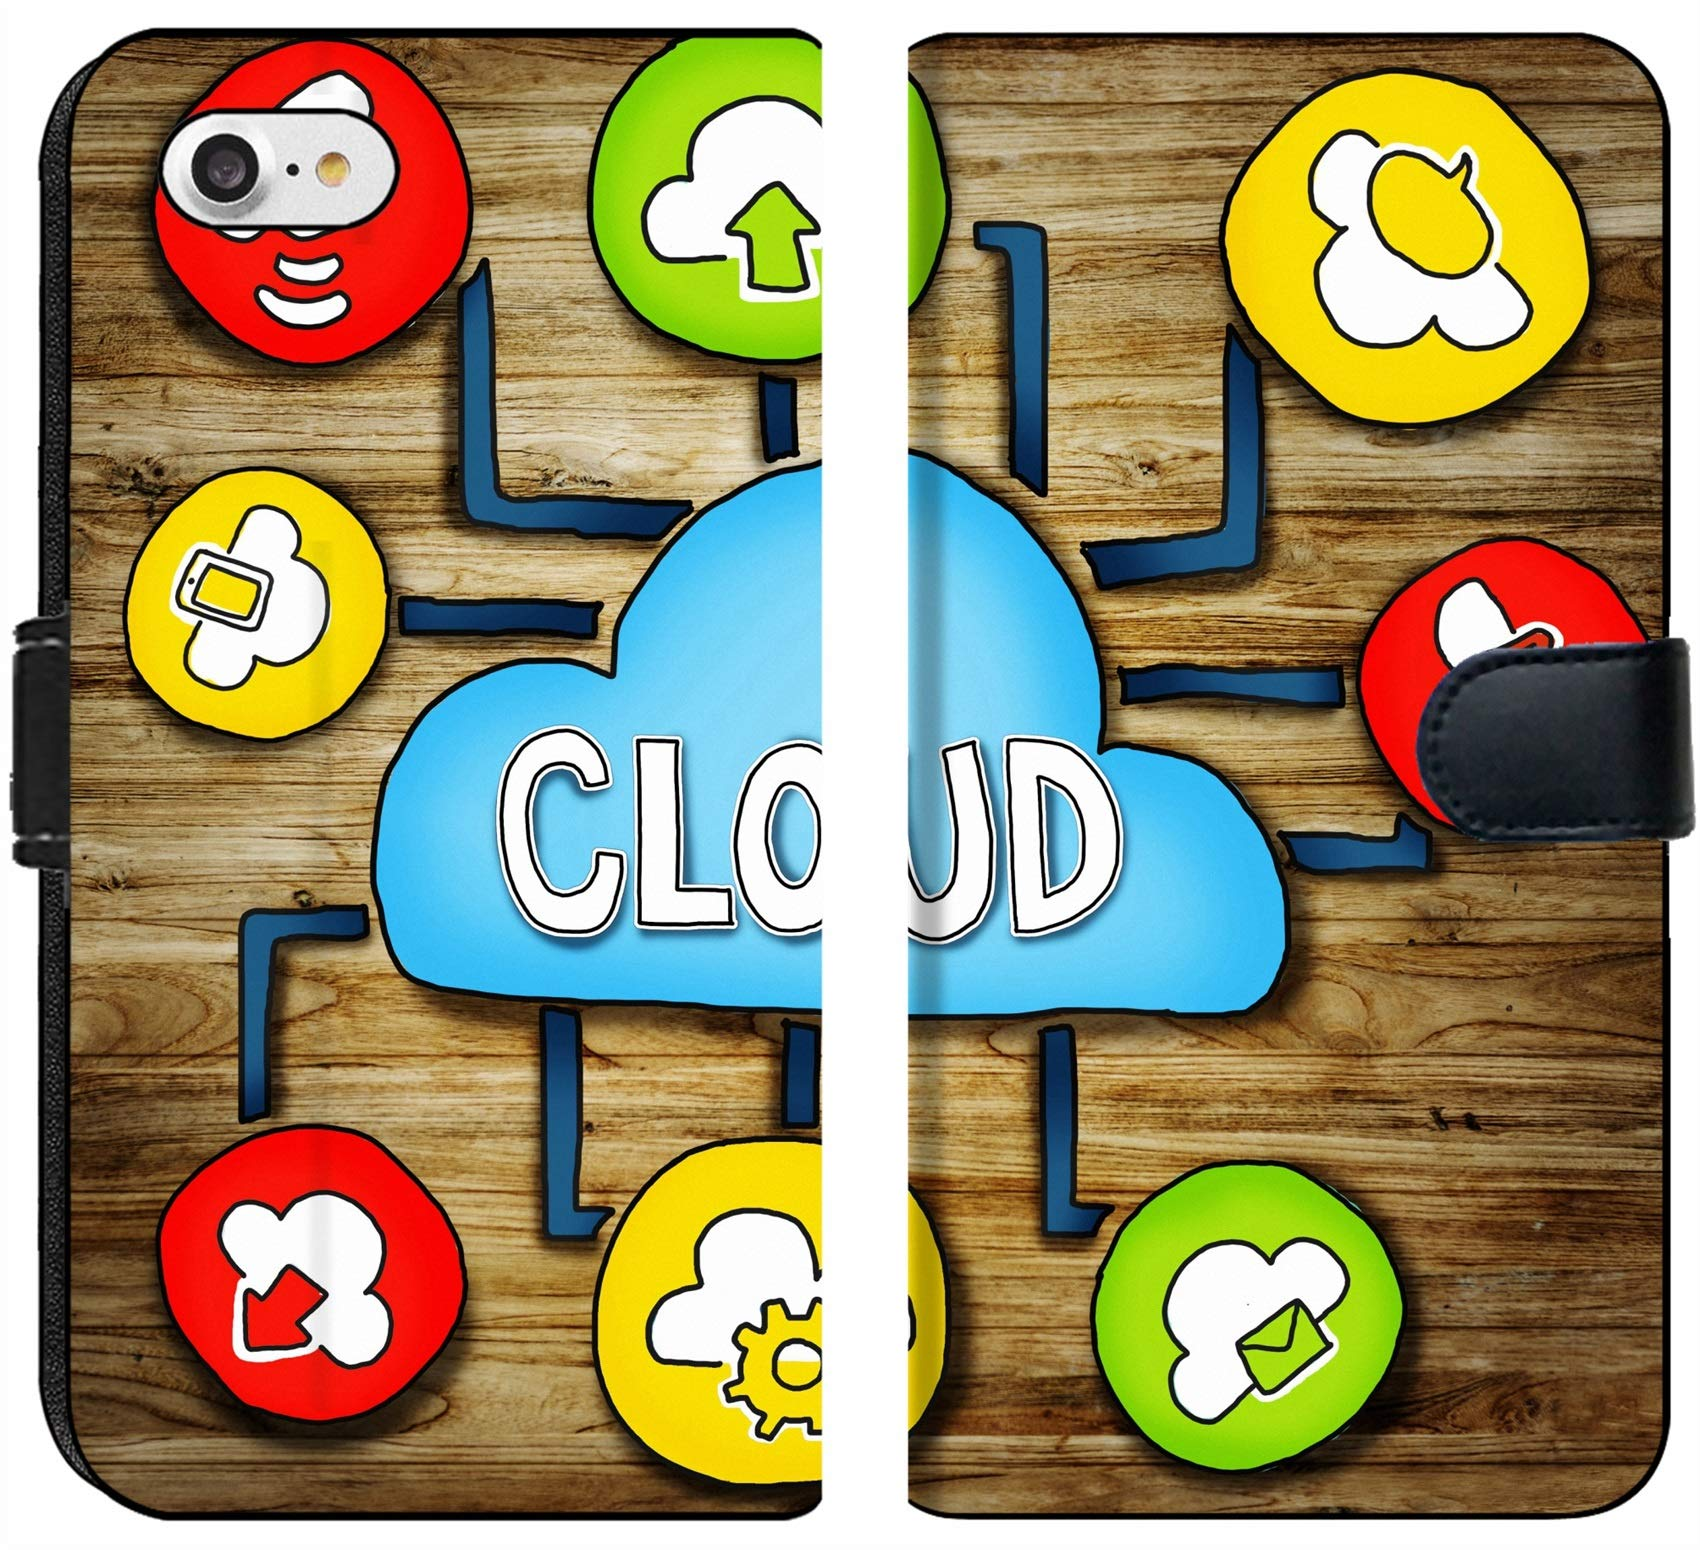 Luxlady iPhone 7 Flip Fabric Wallet Case IMAGE ID: 34402076 Aerial View of People and Cloud Computing Concepts by Luxlady